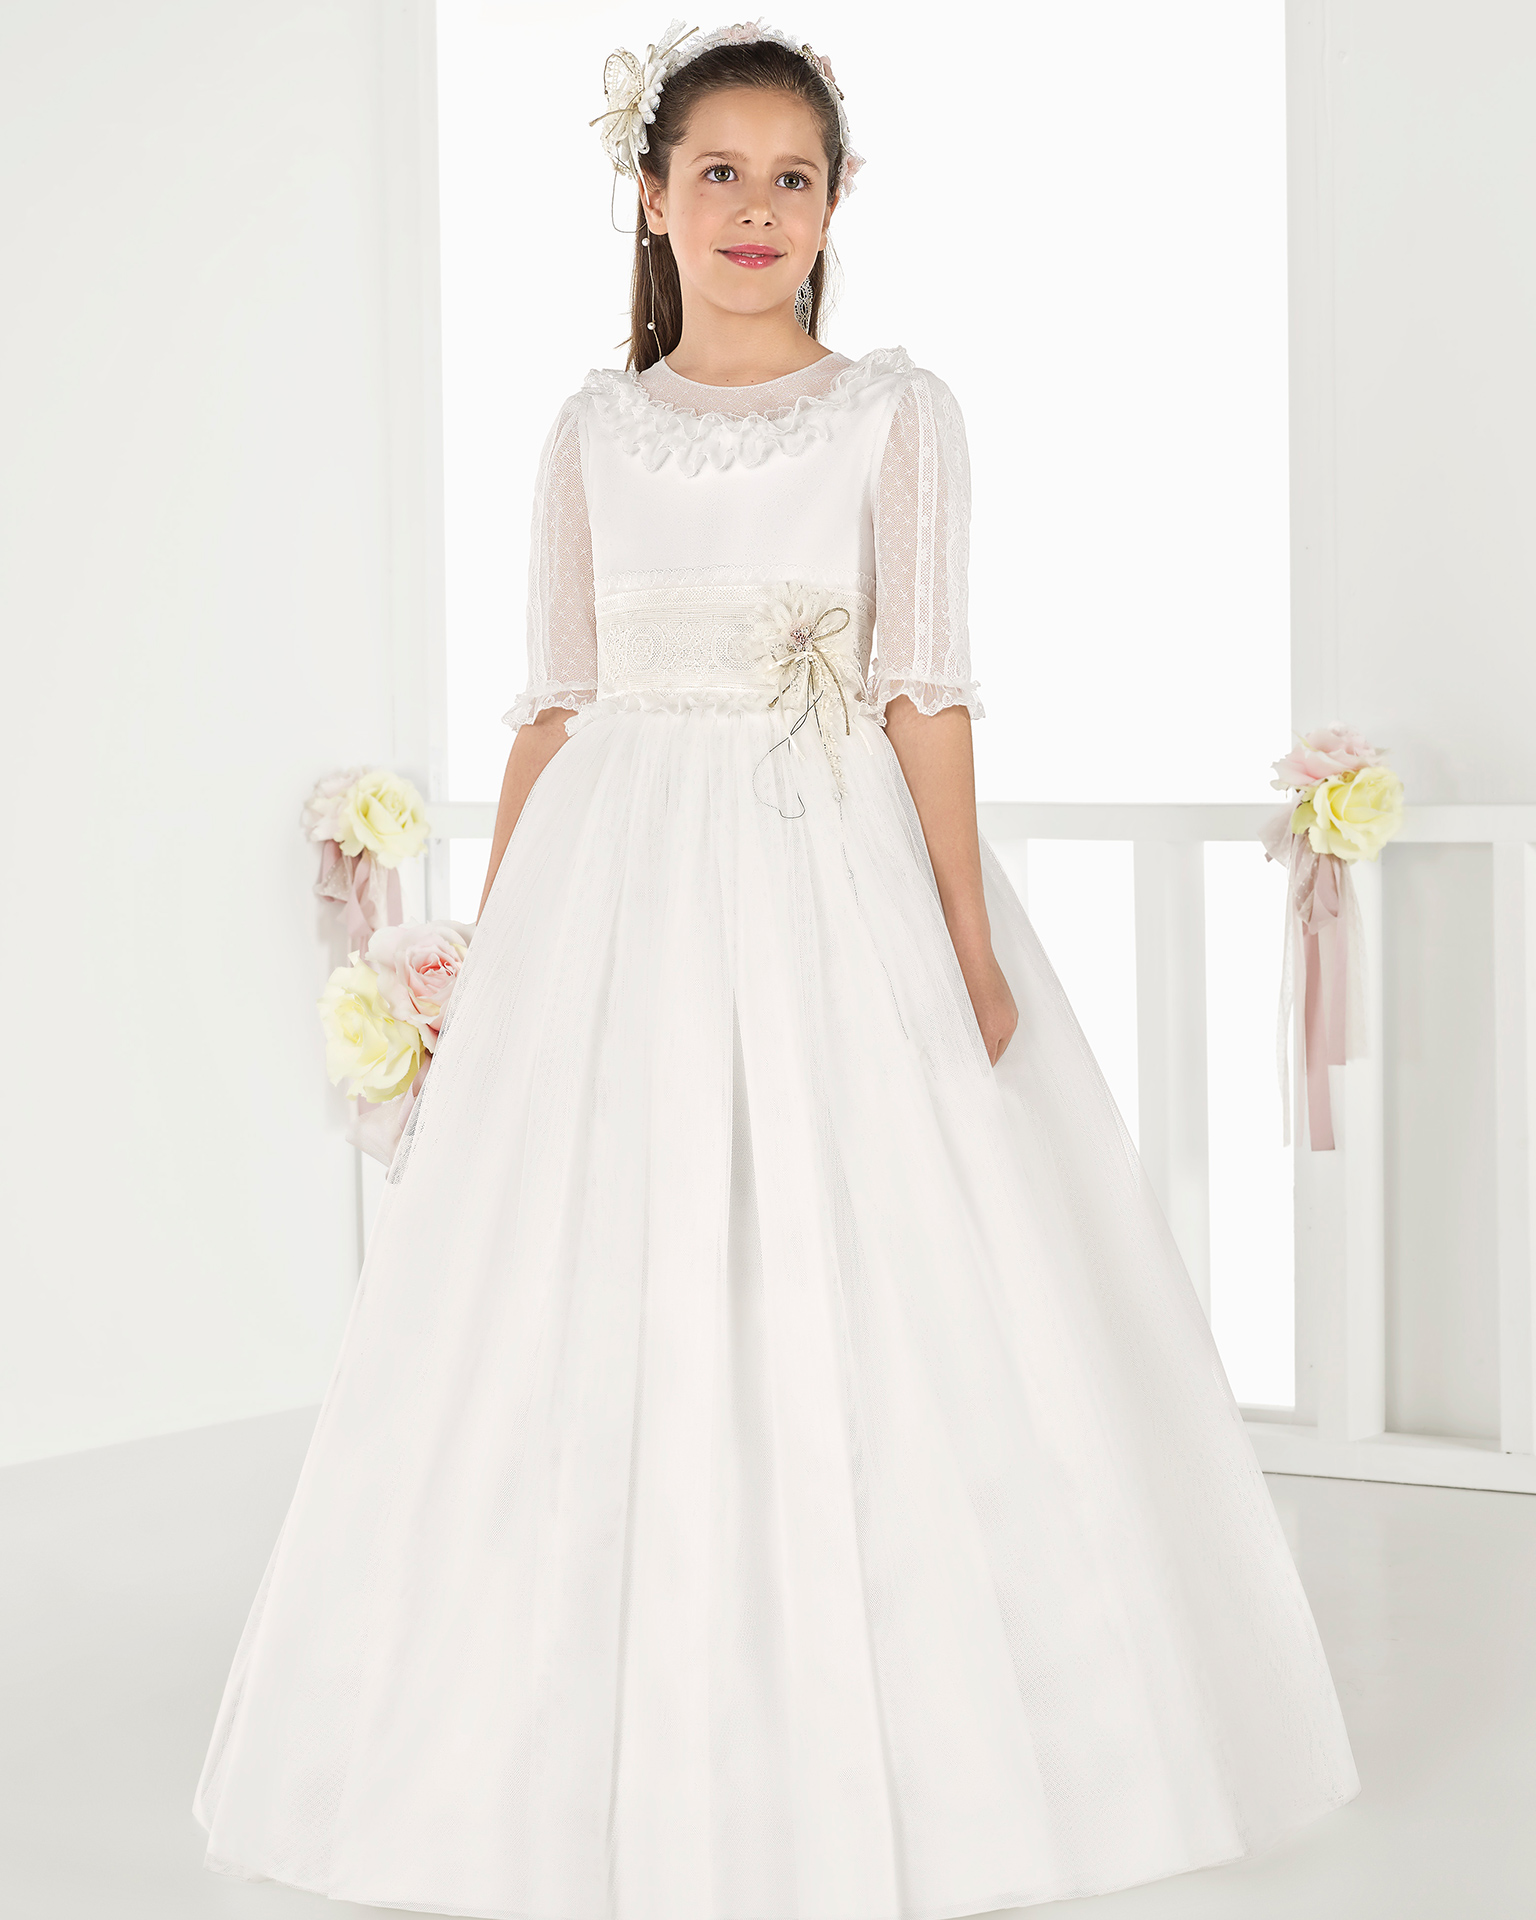 Ballgown-style tulle First Communion or bridesmaid's dress with regular waist, in natural. 2018 AIRE COMUNION Collection.